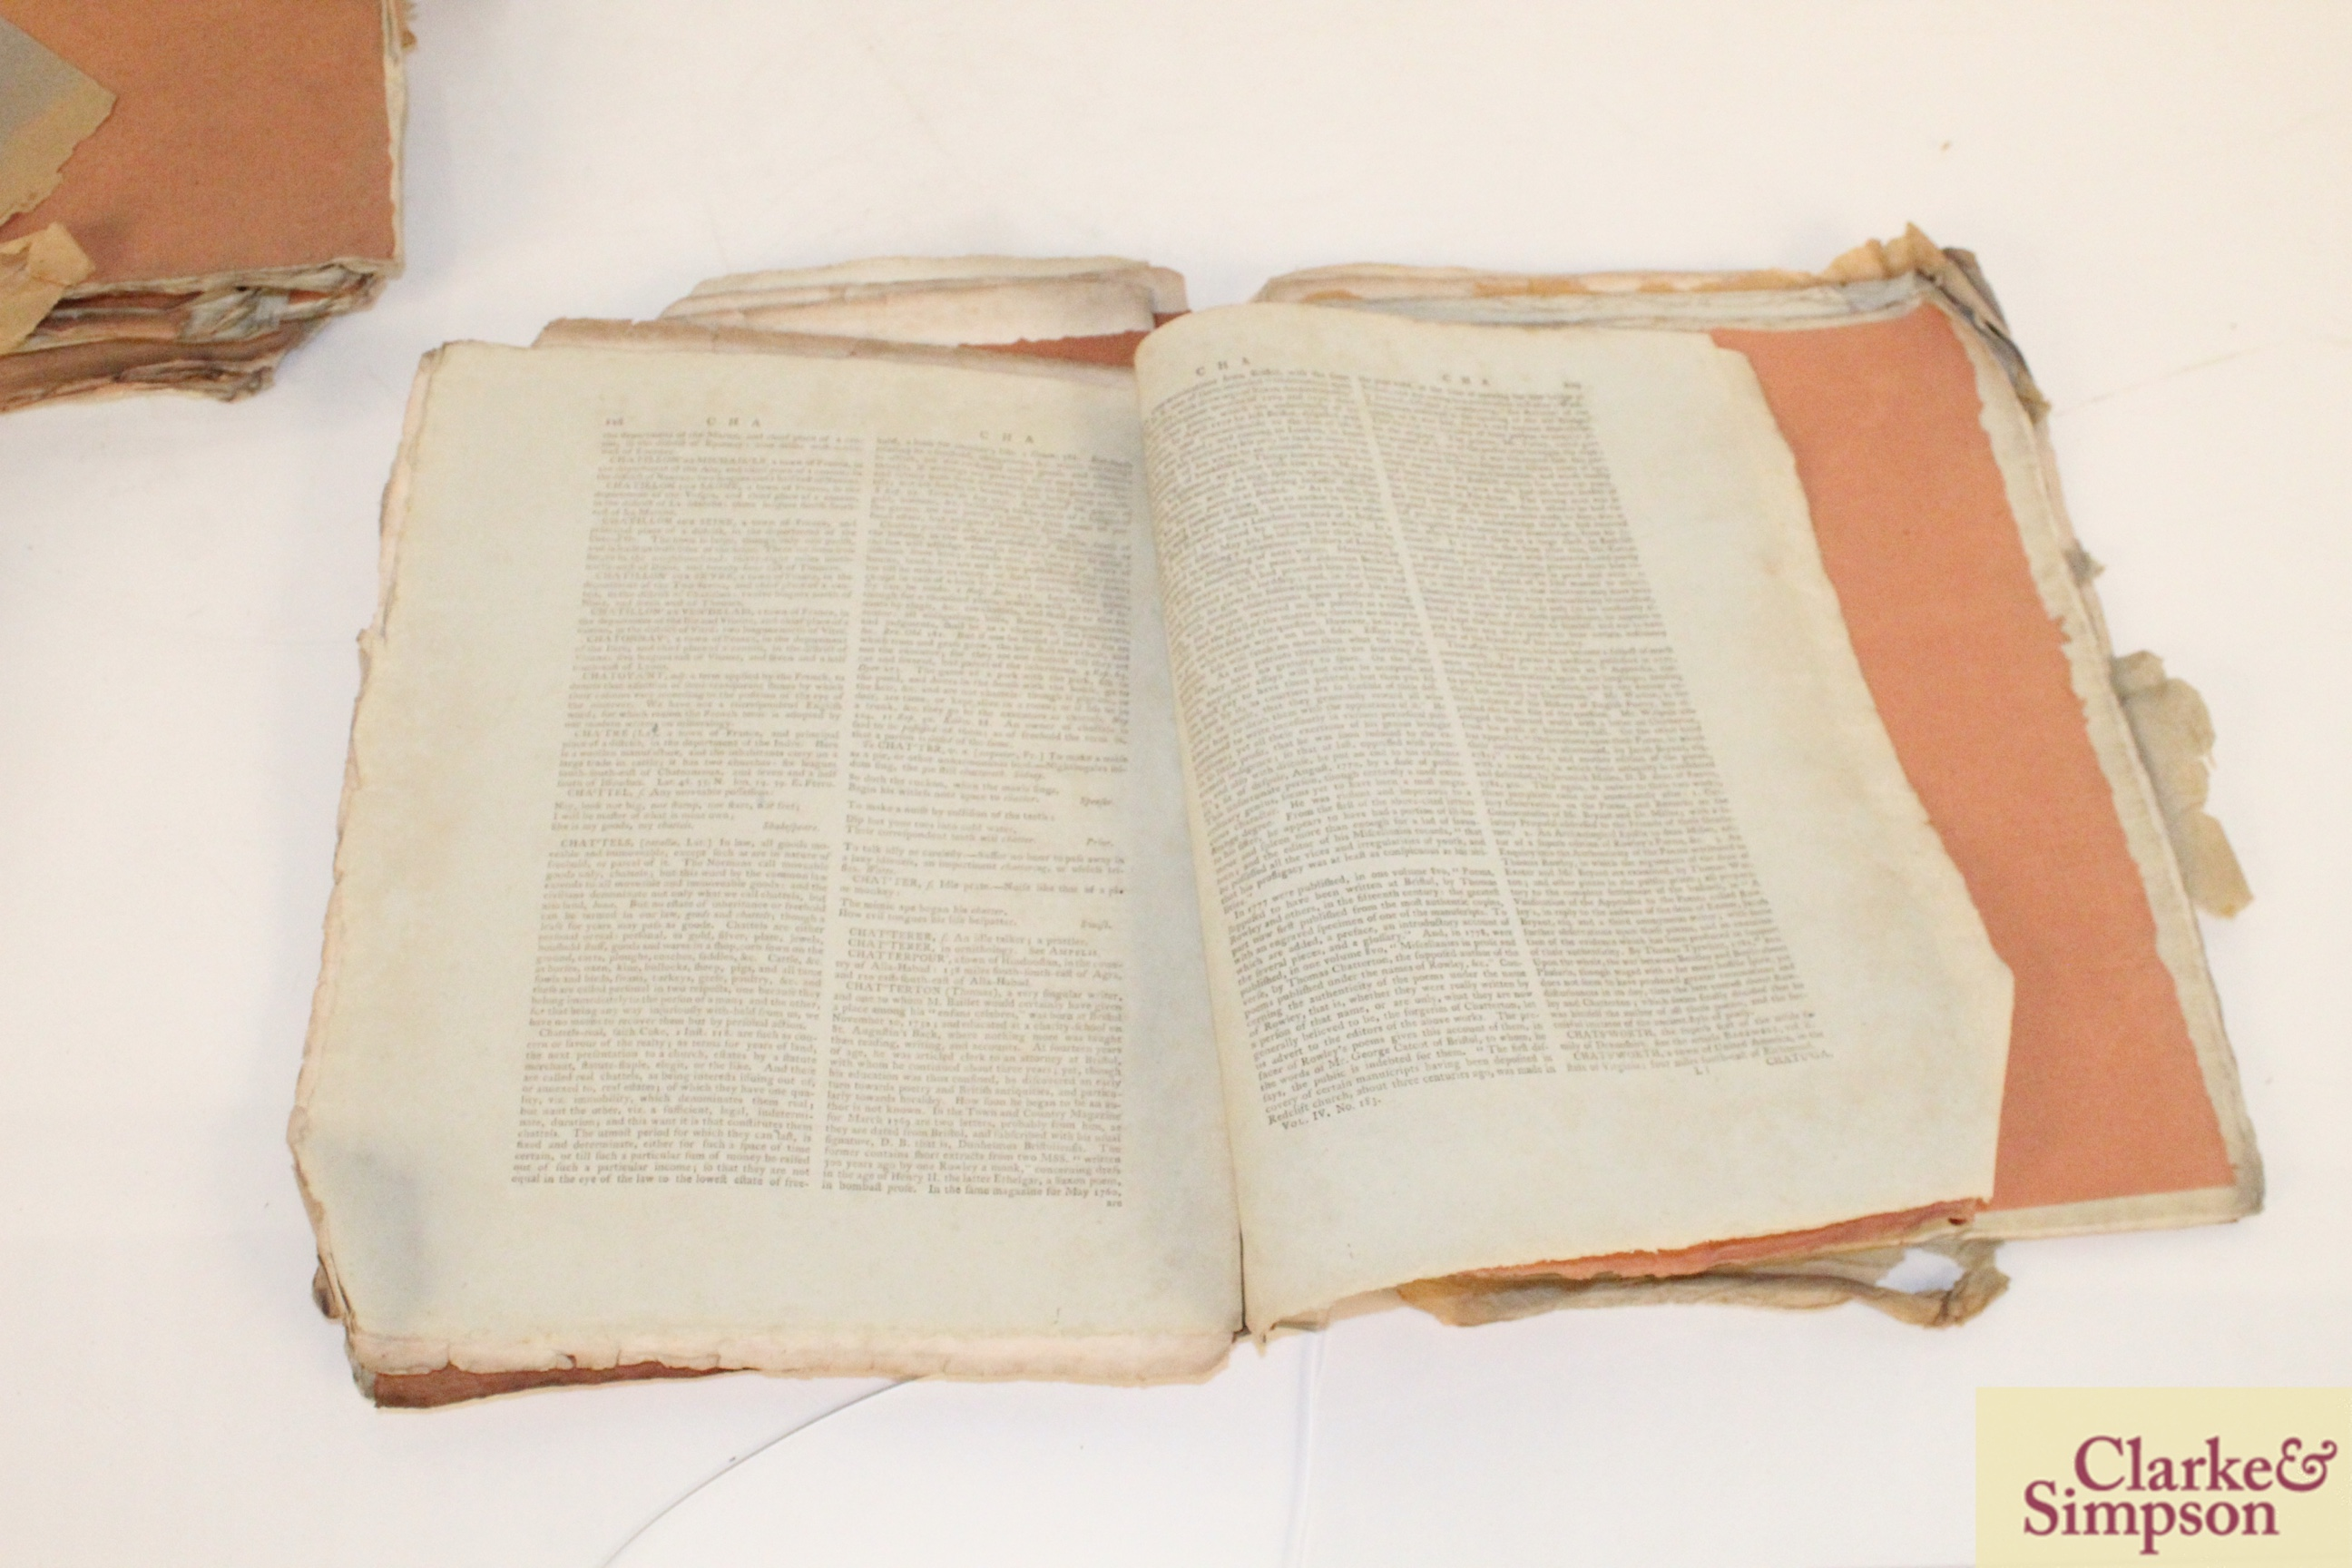 A collection of 18th / 19th Century pamphlets with - Image 2 of 4